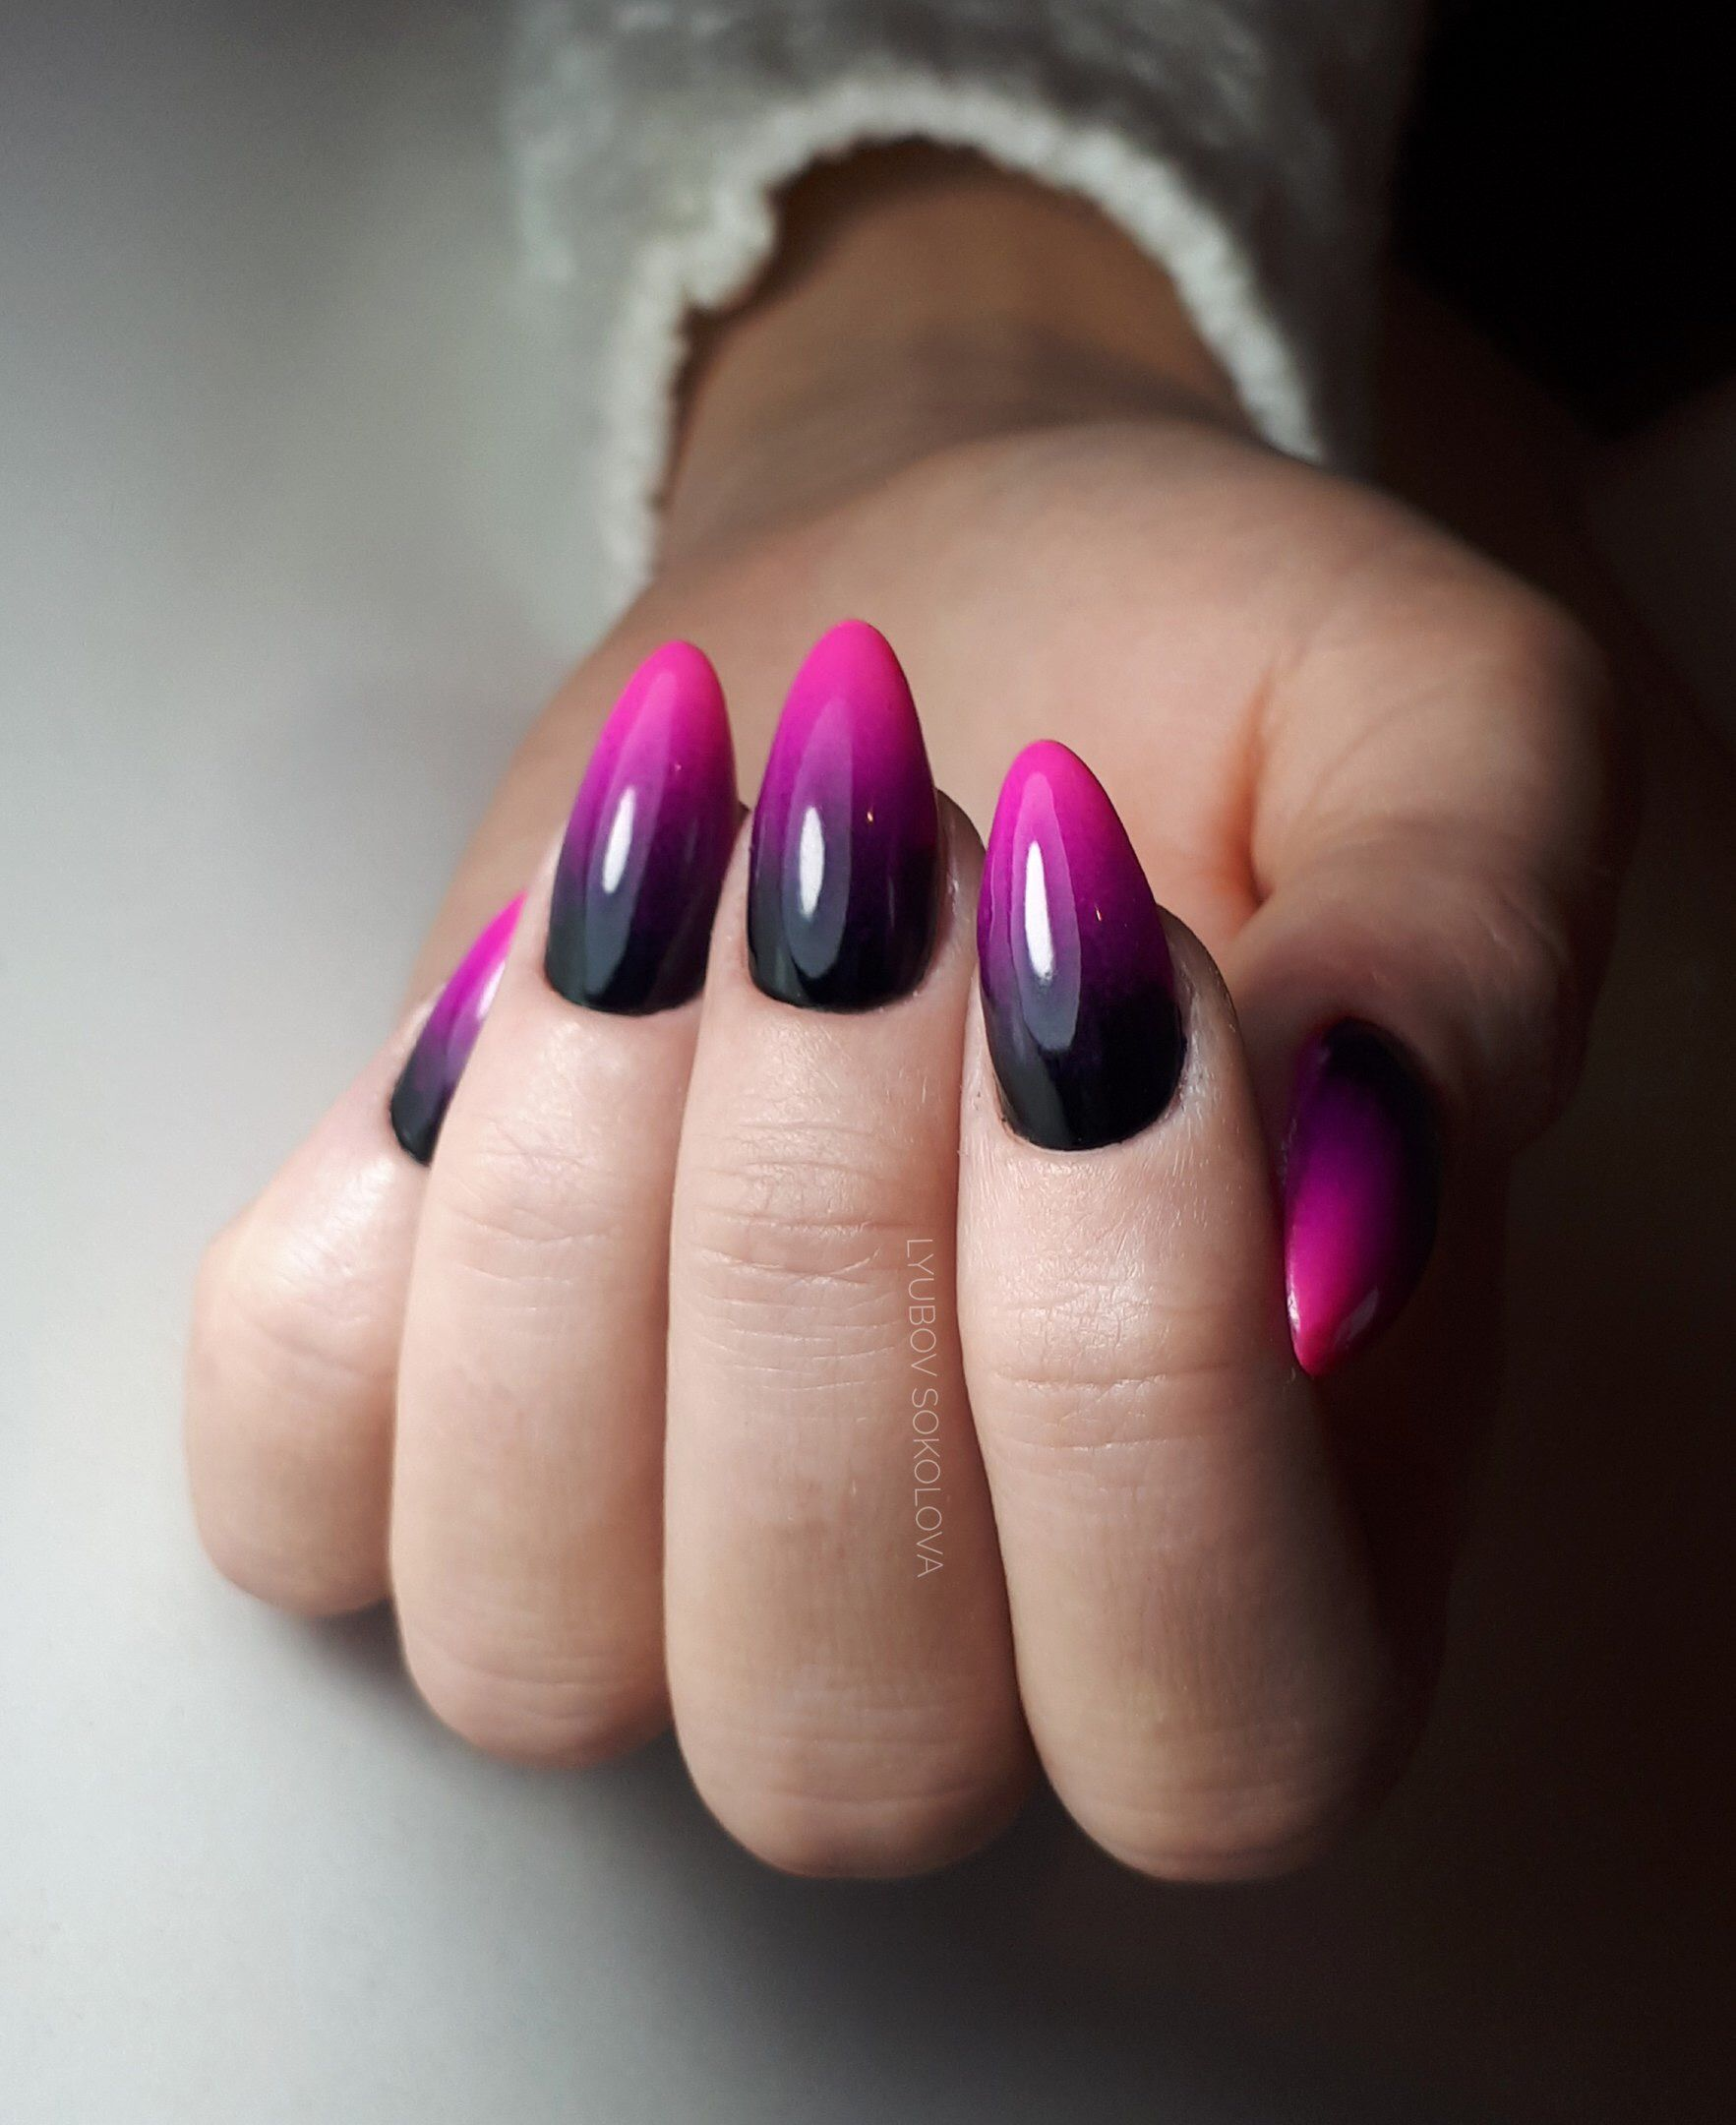 Pin by My Info on nails | Pinterest | Manicure, Nail color designs ...